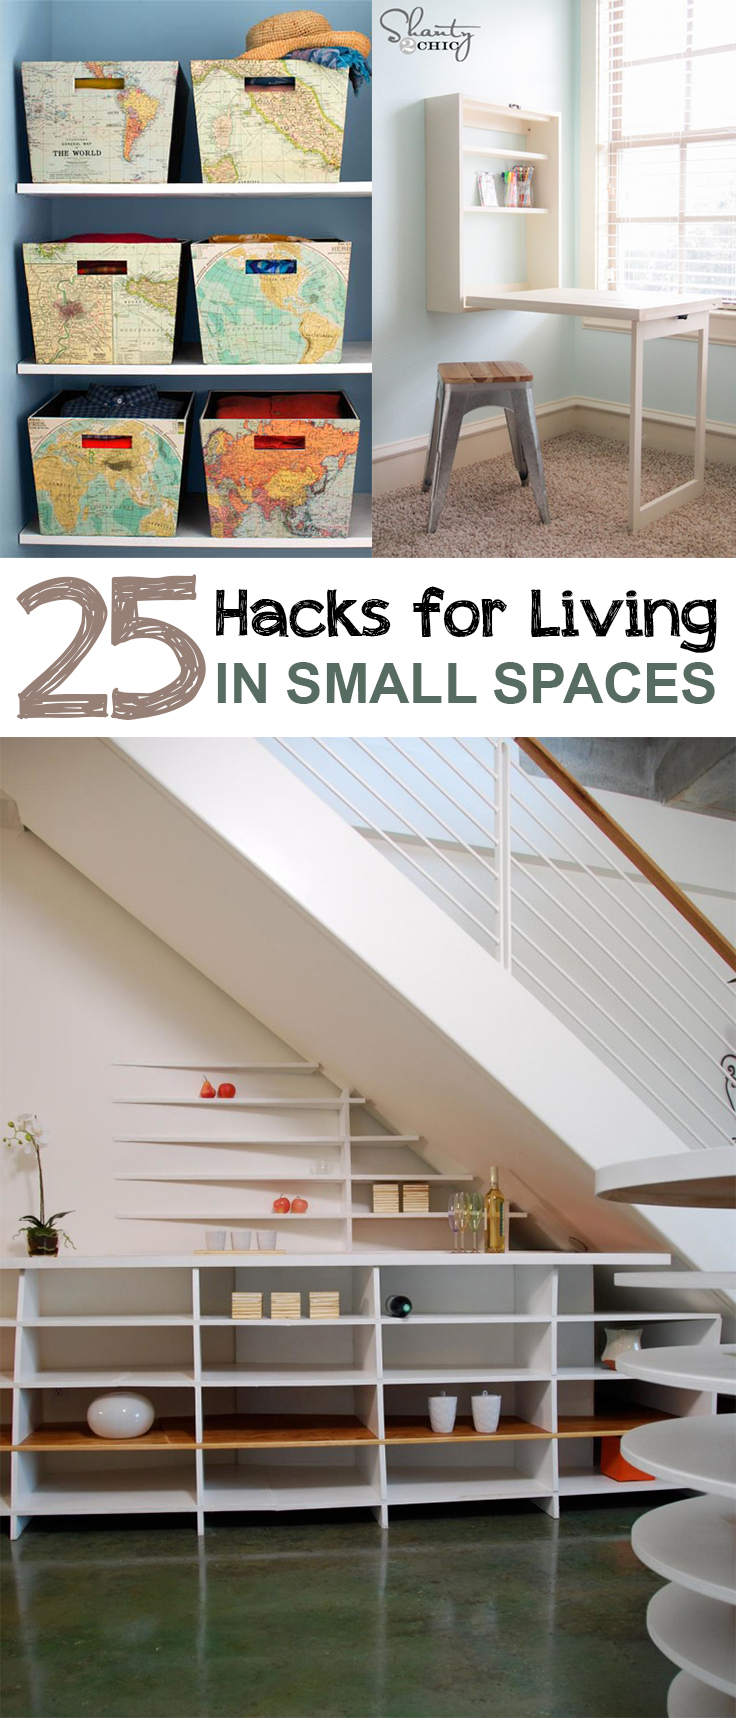 25 hacks for living in small spaces page 19 of 26 picky stitch. Black Bedroom Furniture Sets. Home Design Ideas